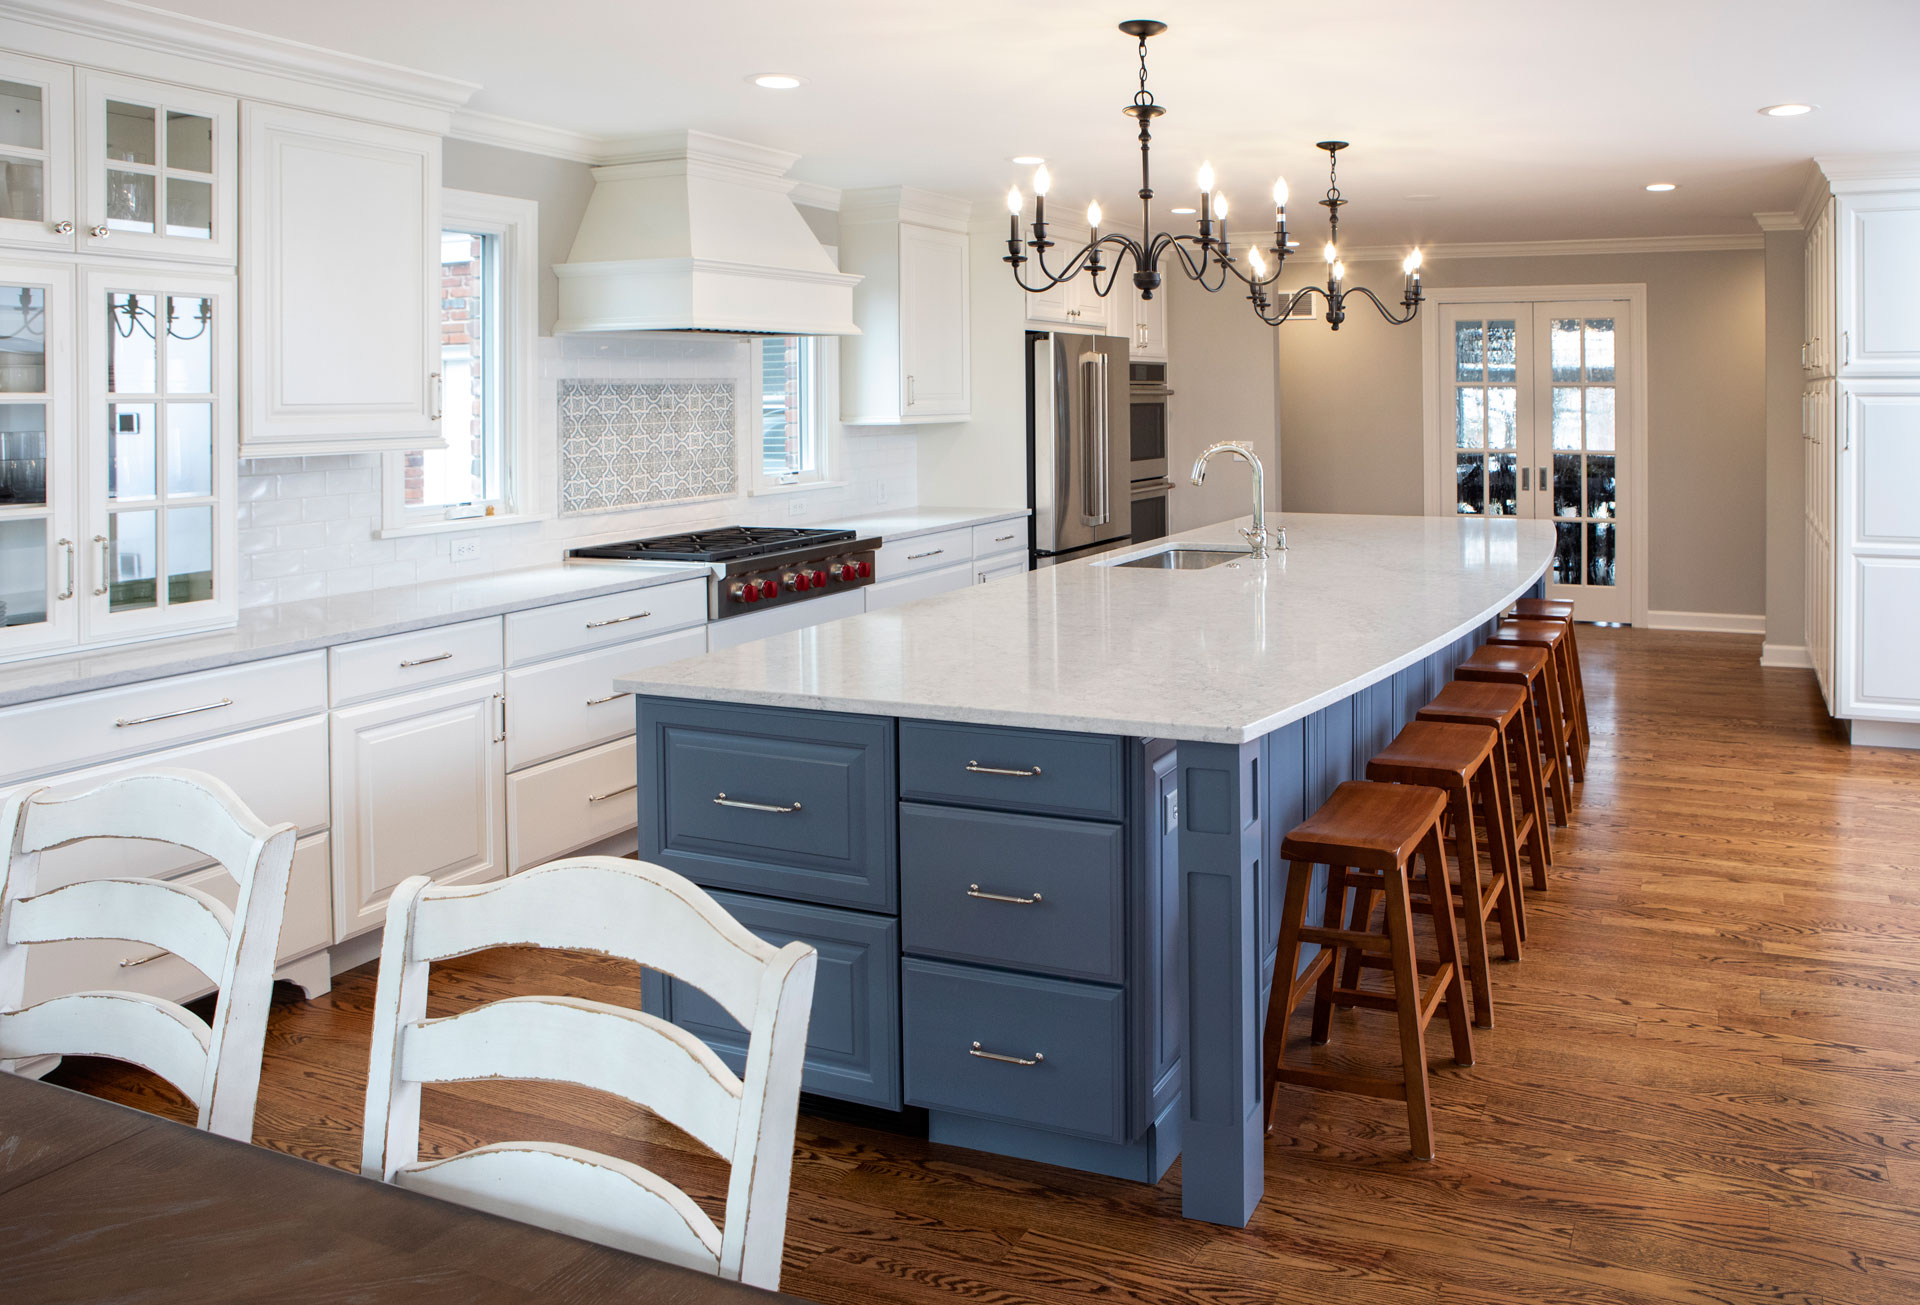 Roeser-Home-Remodeling-St-Louis-Fox-Estates-Kitchen